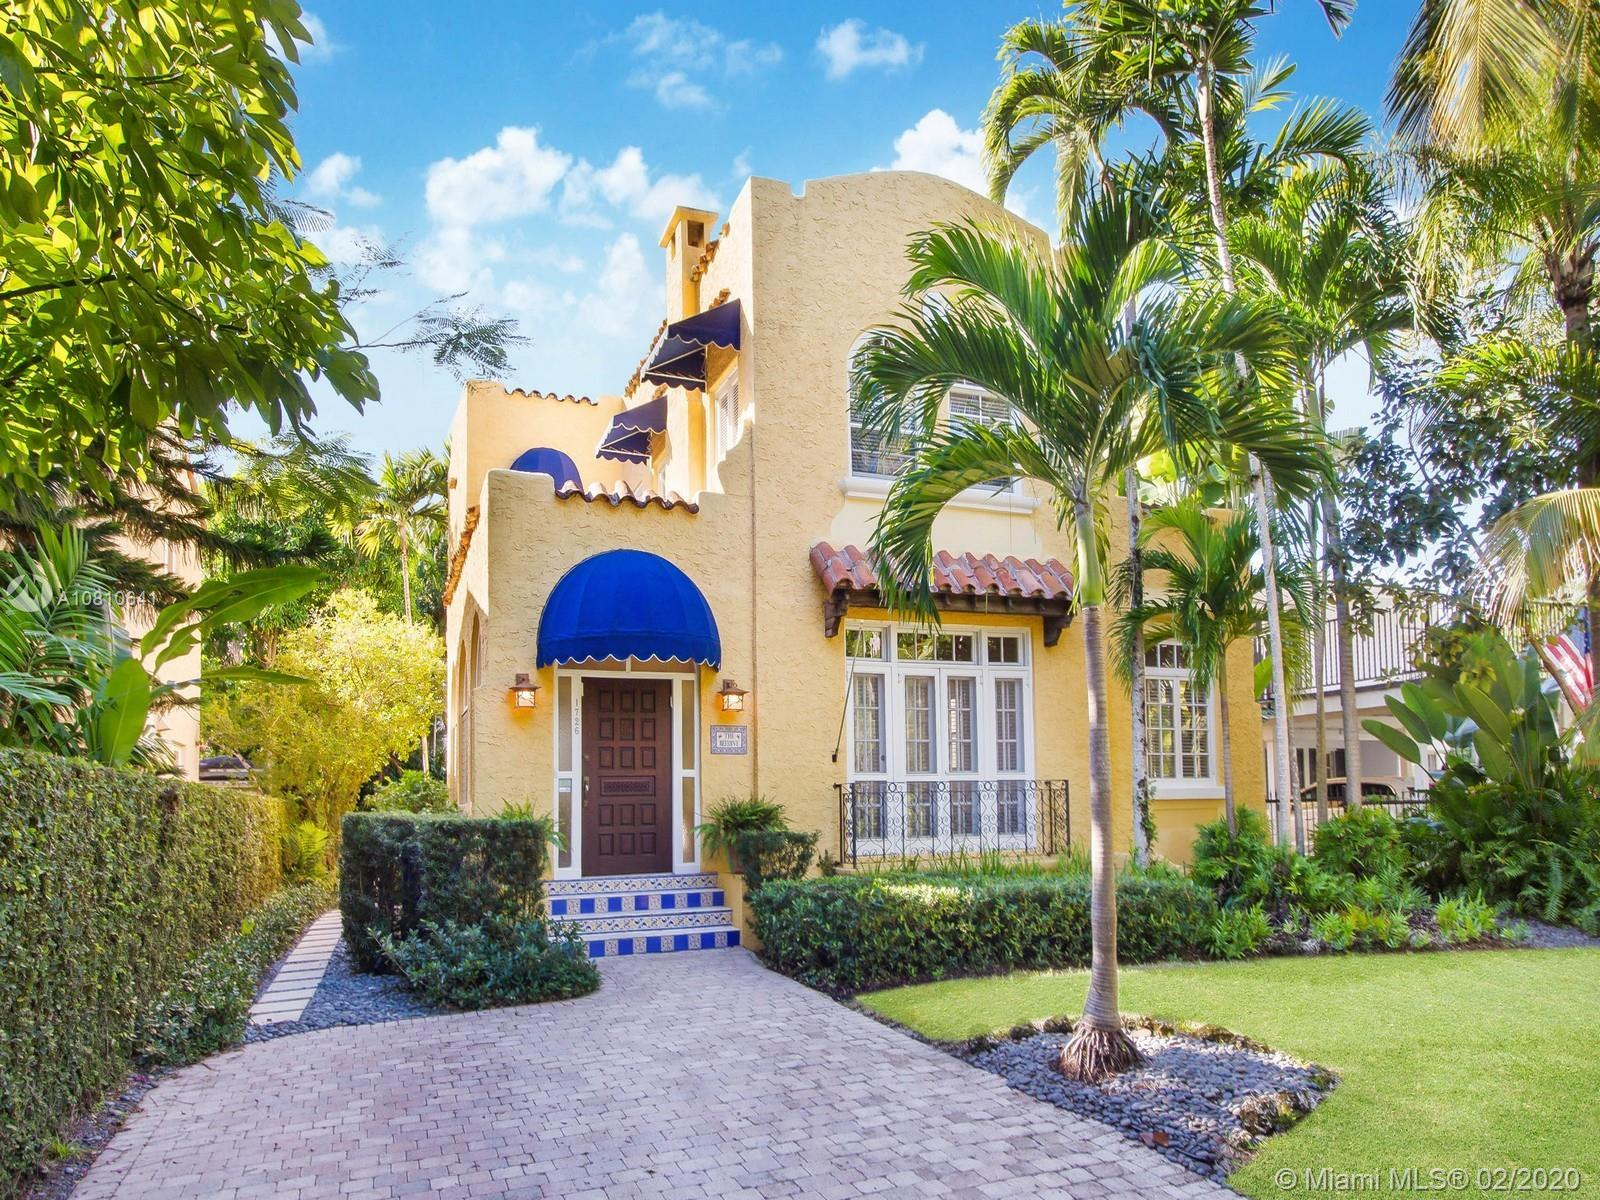 Fabulously located on Espanola in North Coconut Grove the Beehive exudes charm from the very moment